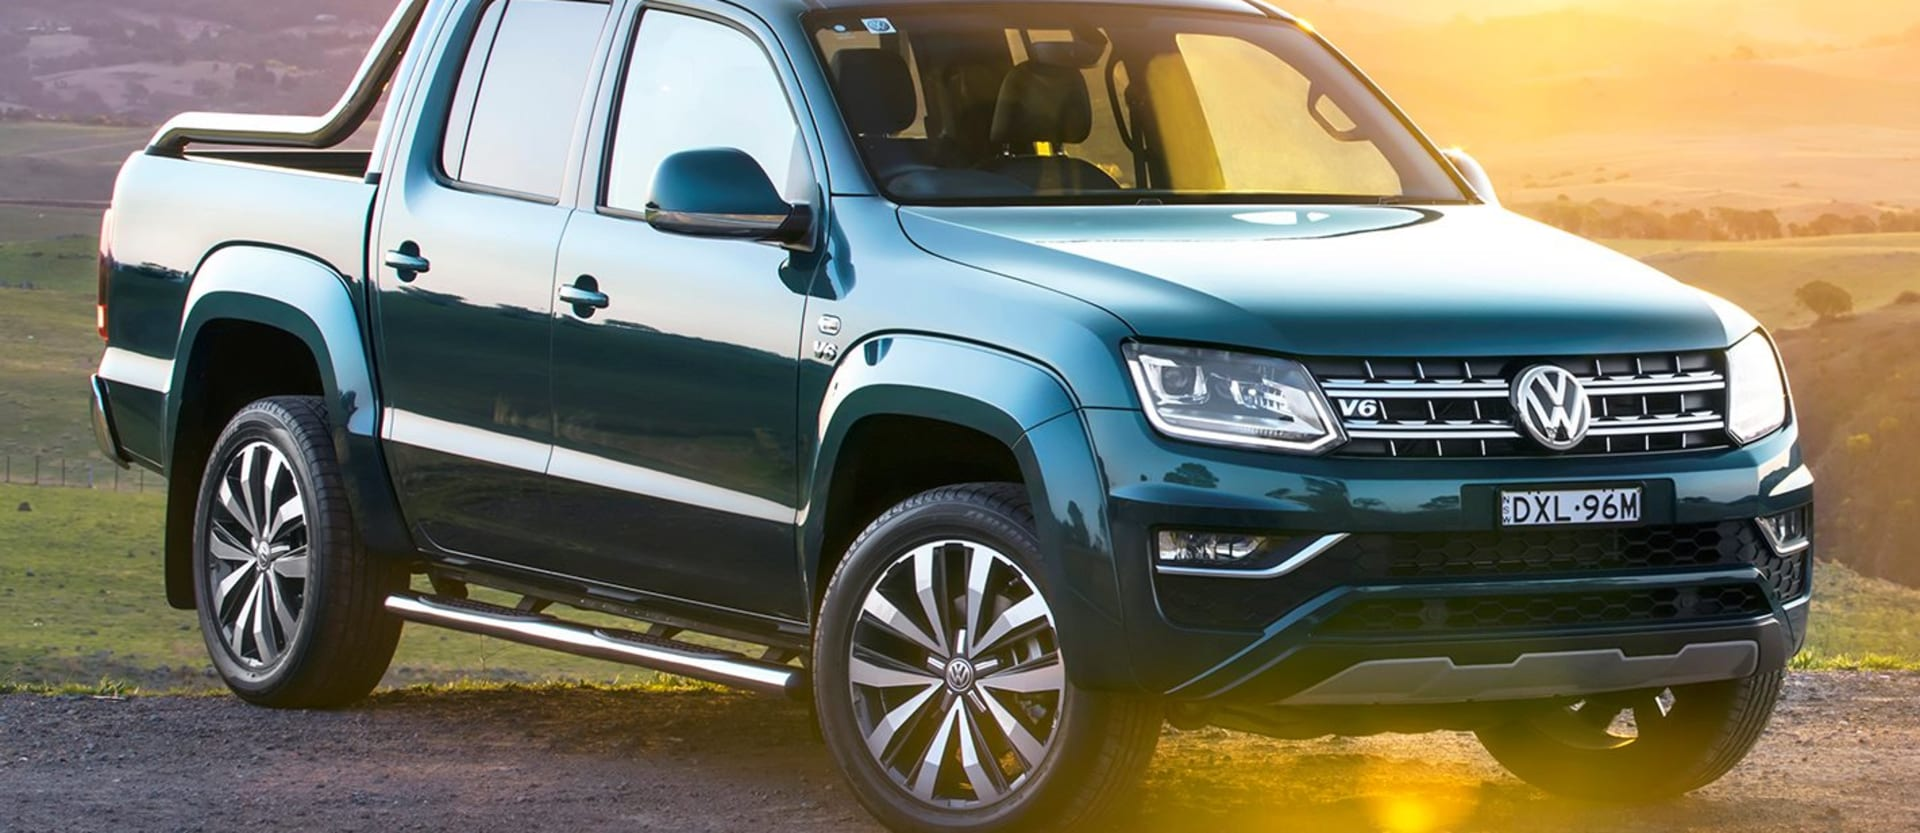 2019 VW Amarok 580 Front Side Static Jpg